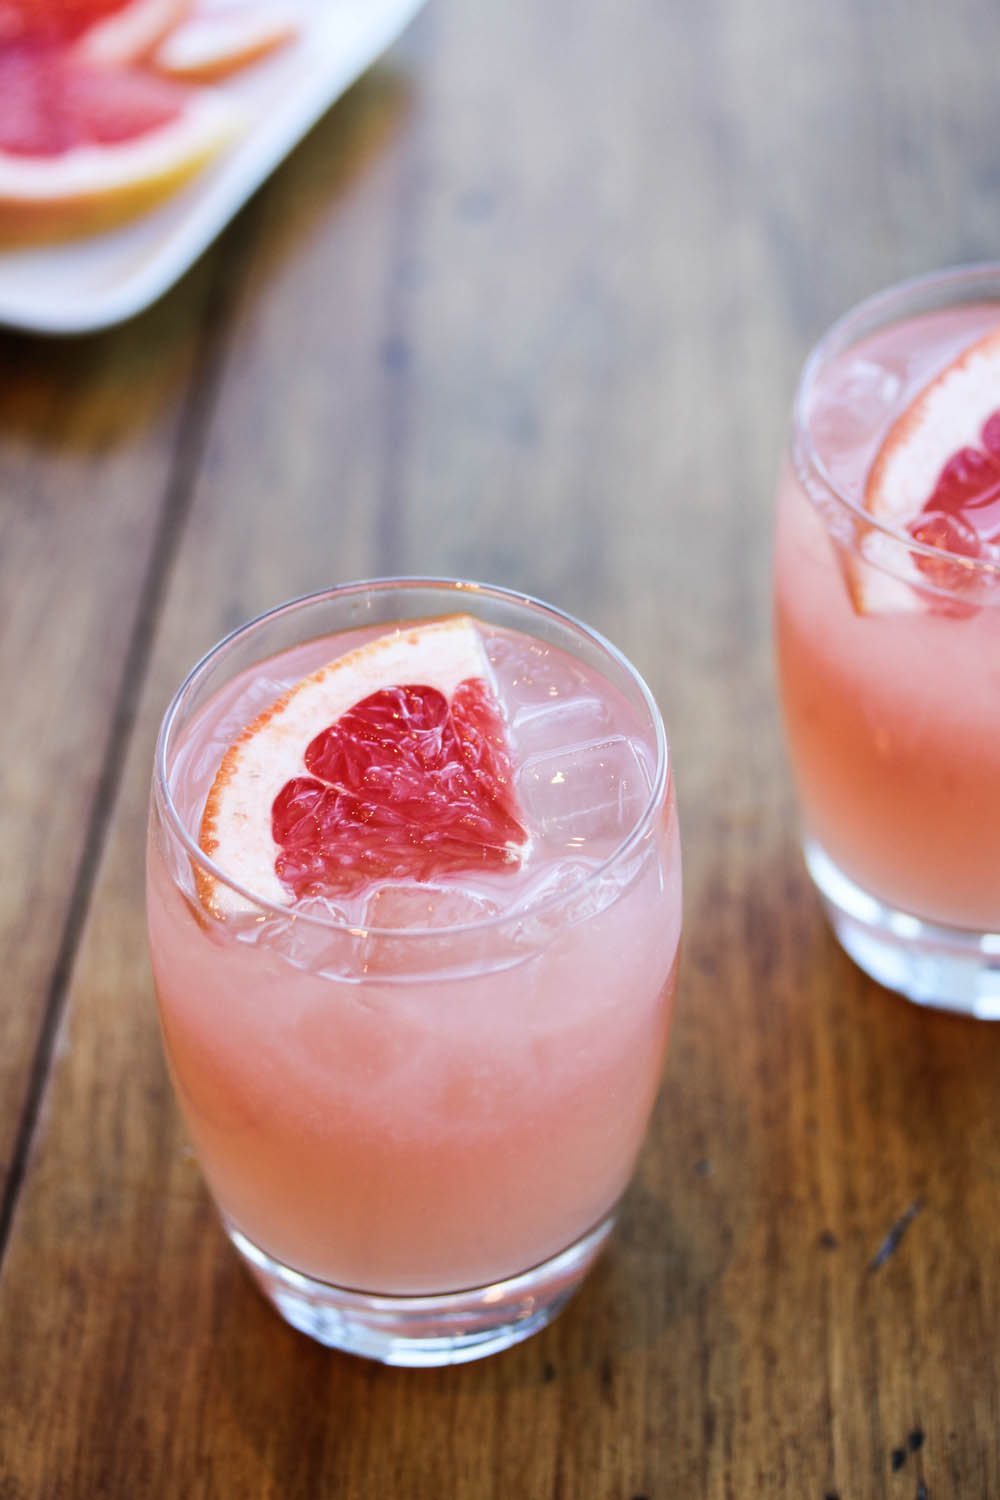 grapefruit ice glass cold drink food photo